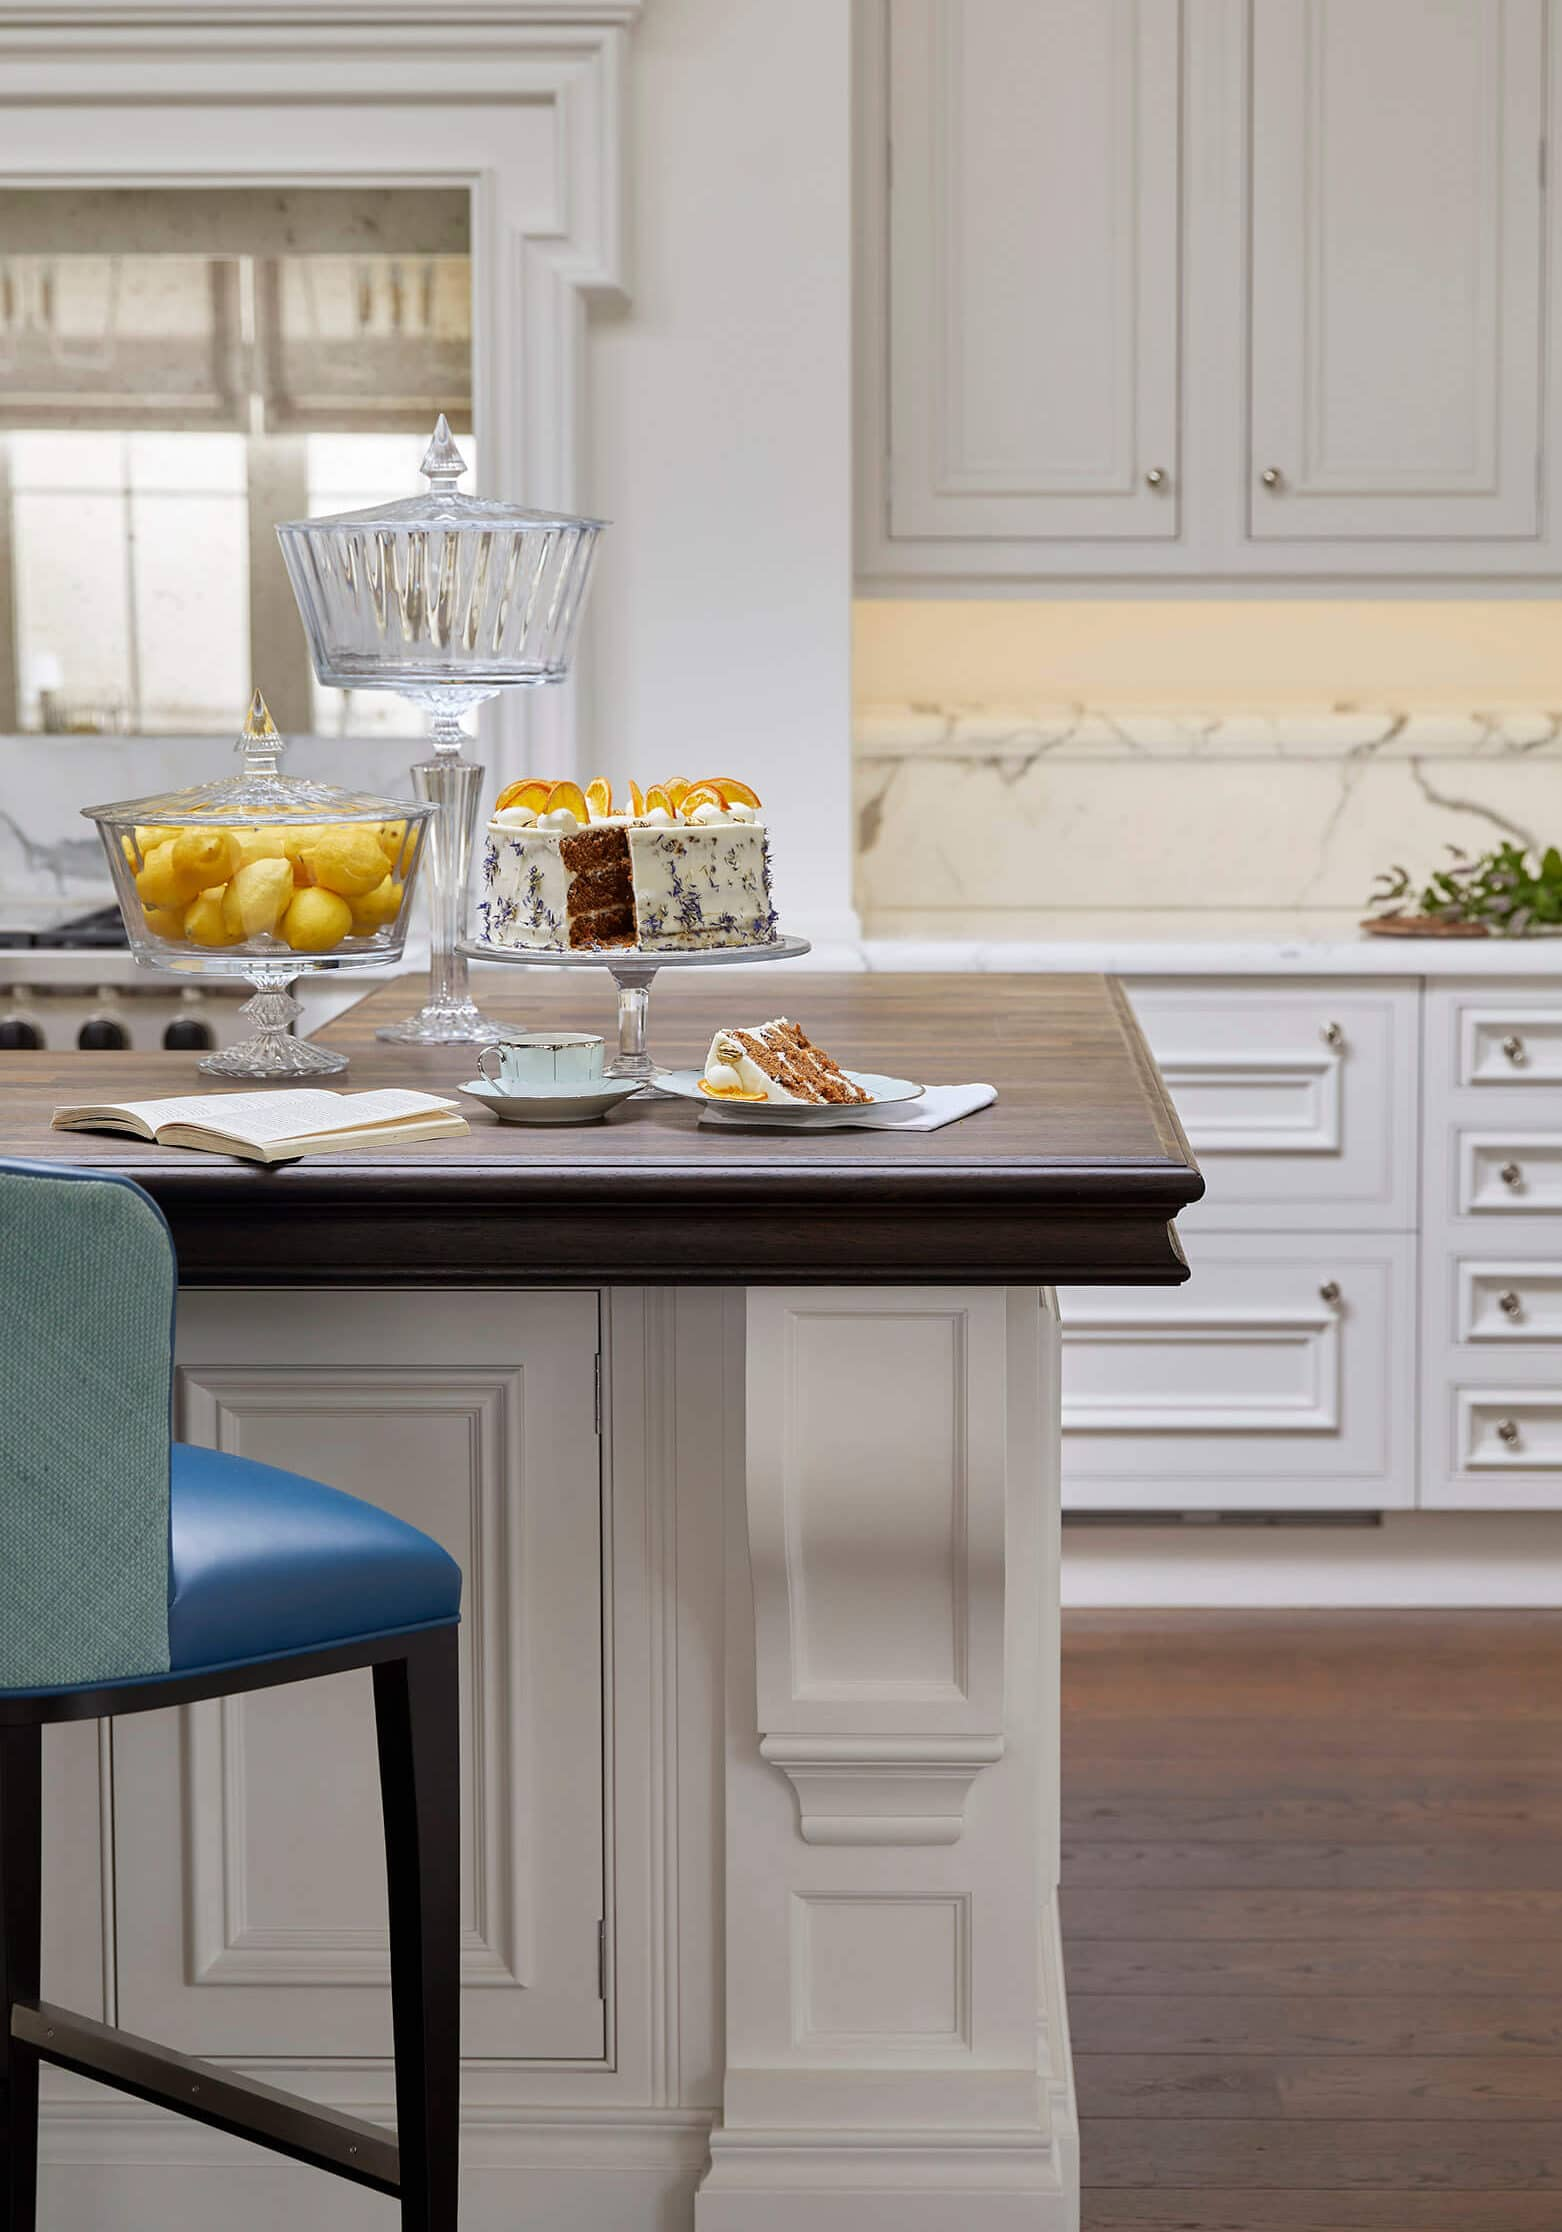 Kitchen of interior design project by Katharine Pooley